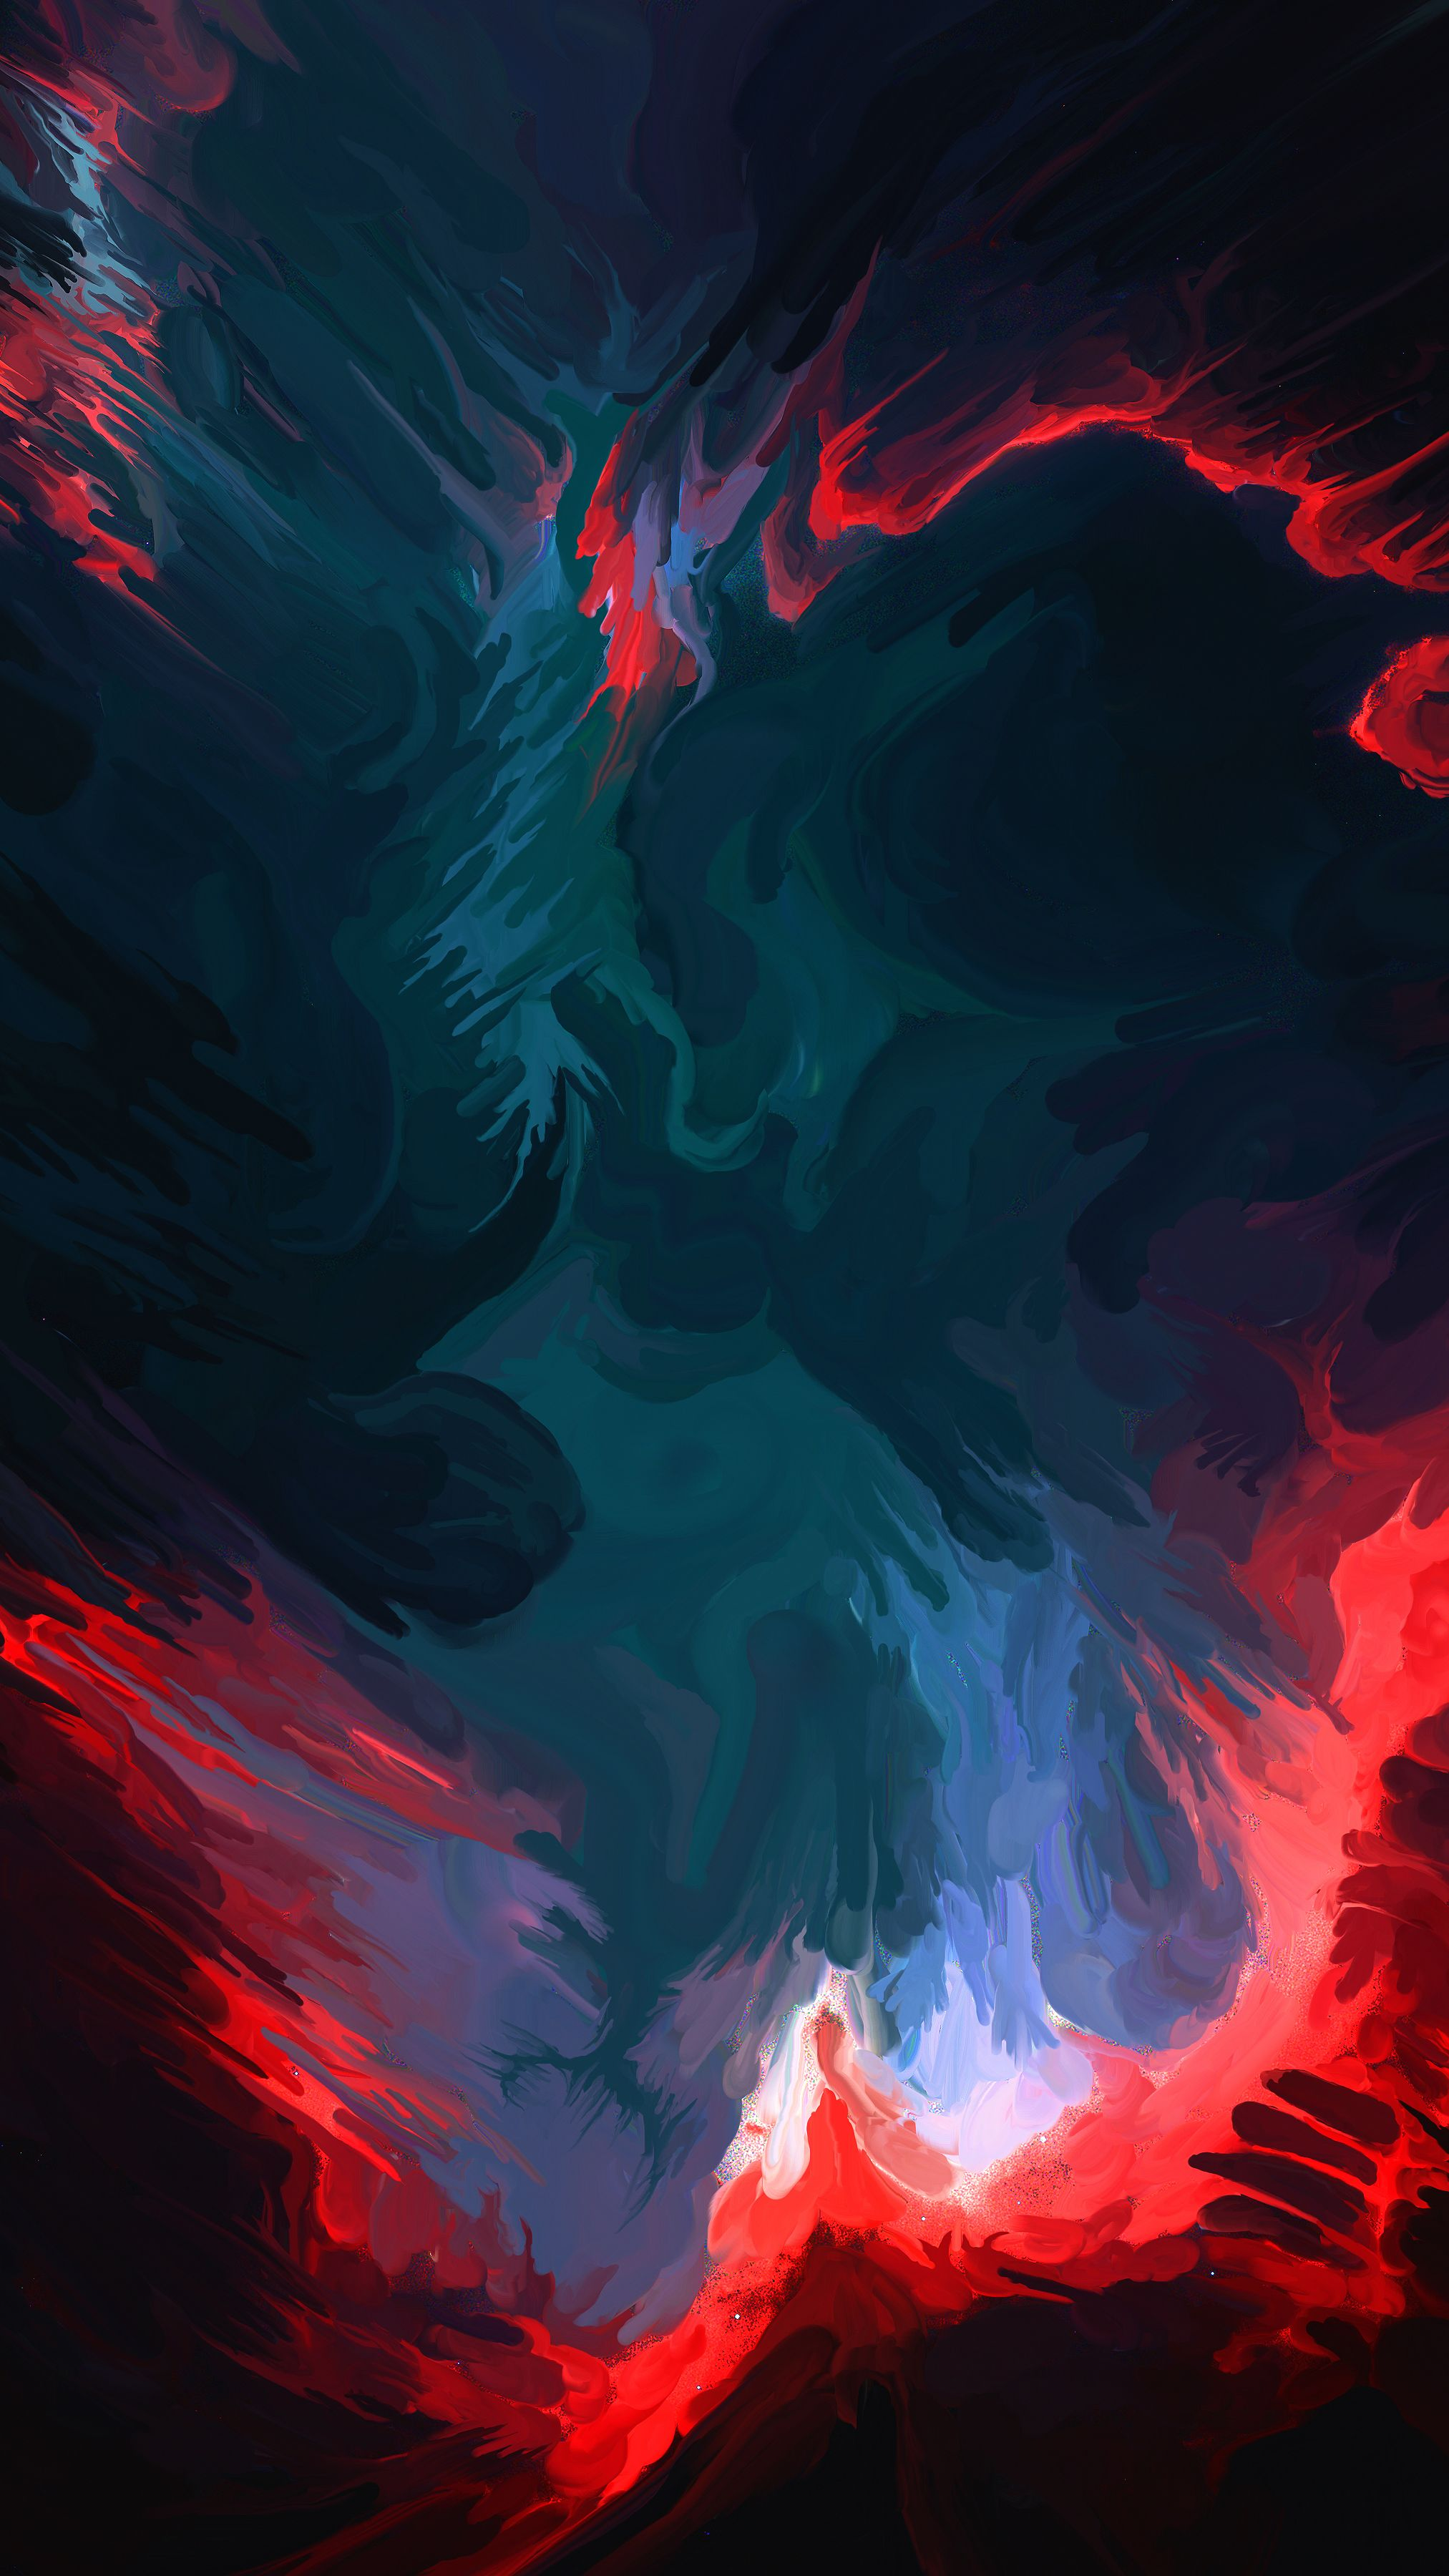 Pin by zryan on zryan Apple watch wallpaper, Abstract